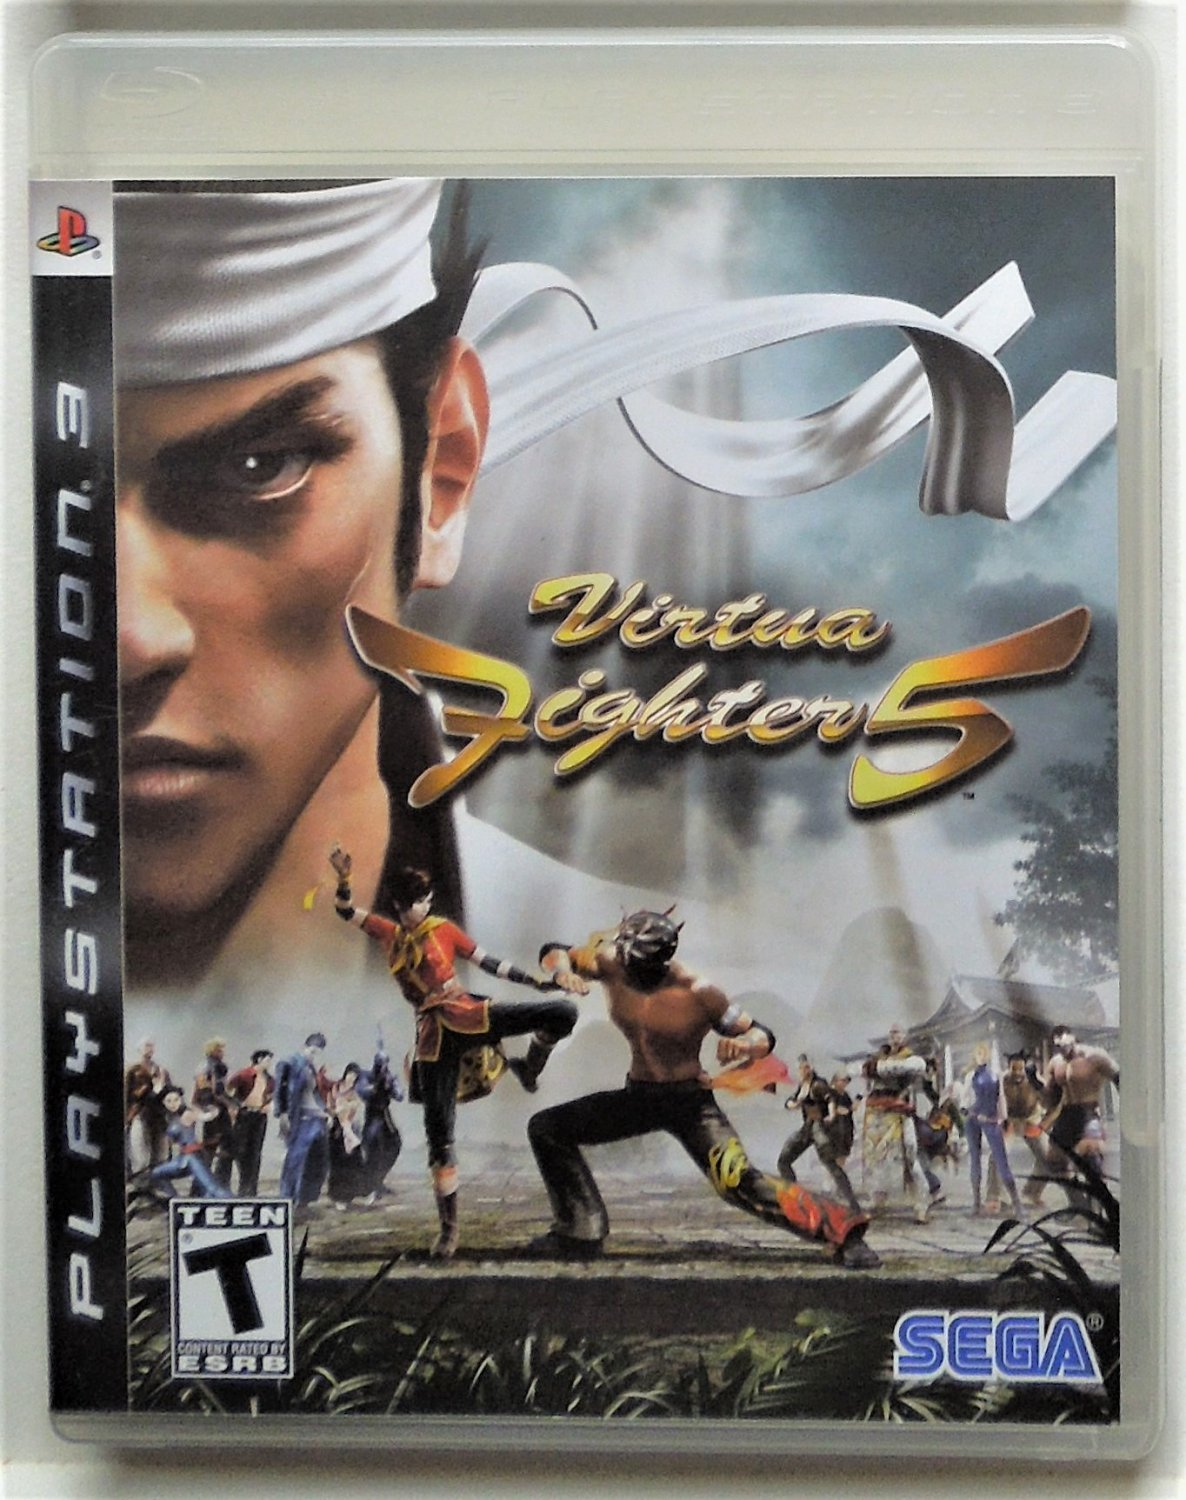 2007 Sega Virtua Fighter 5 For Sony Playstation 3 Game Systems Complete